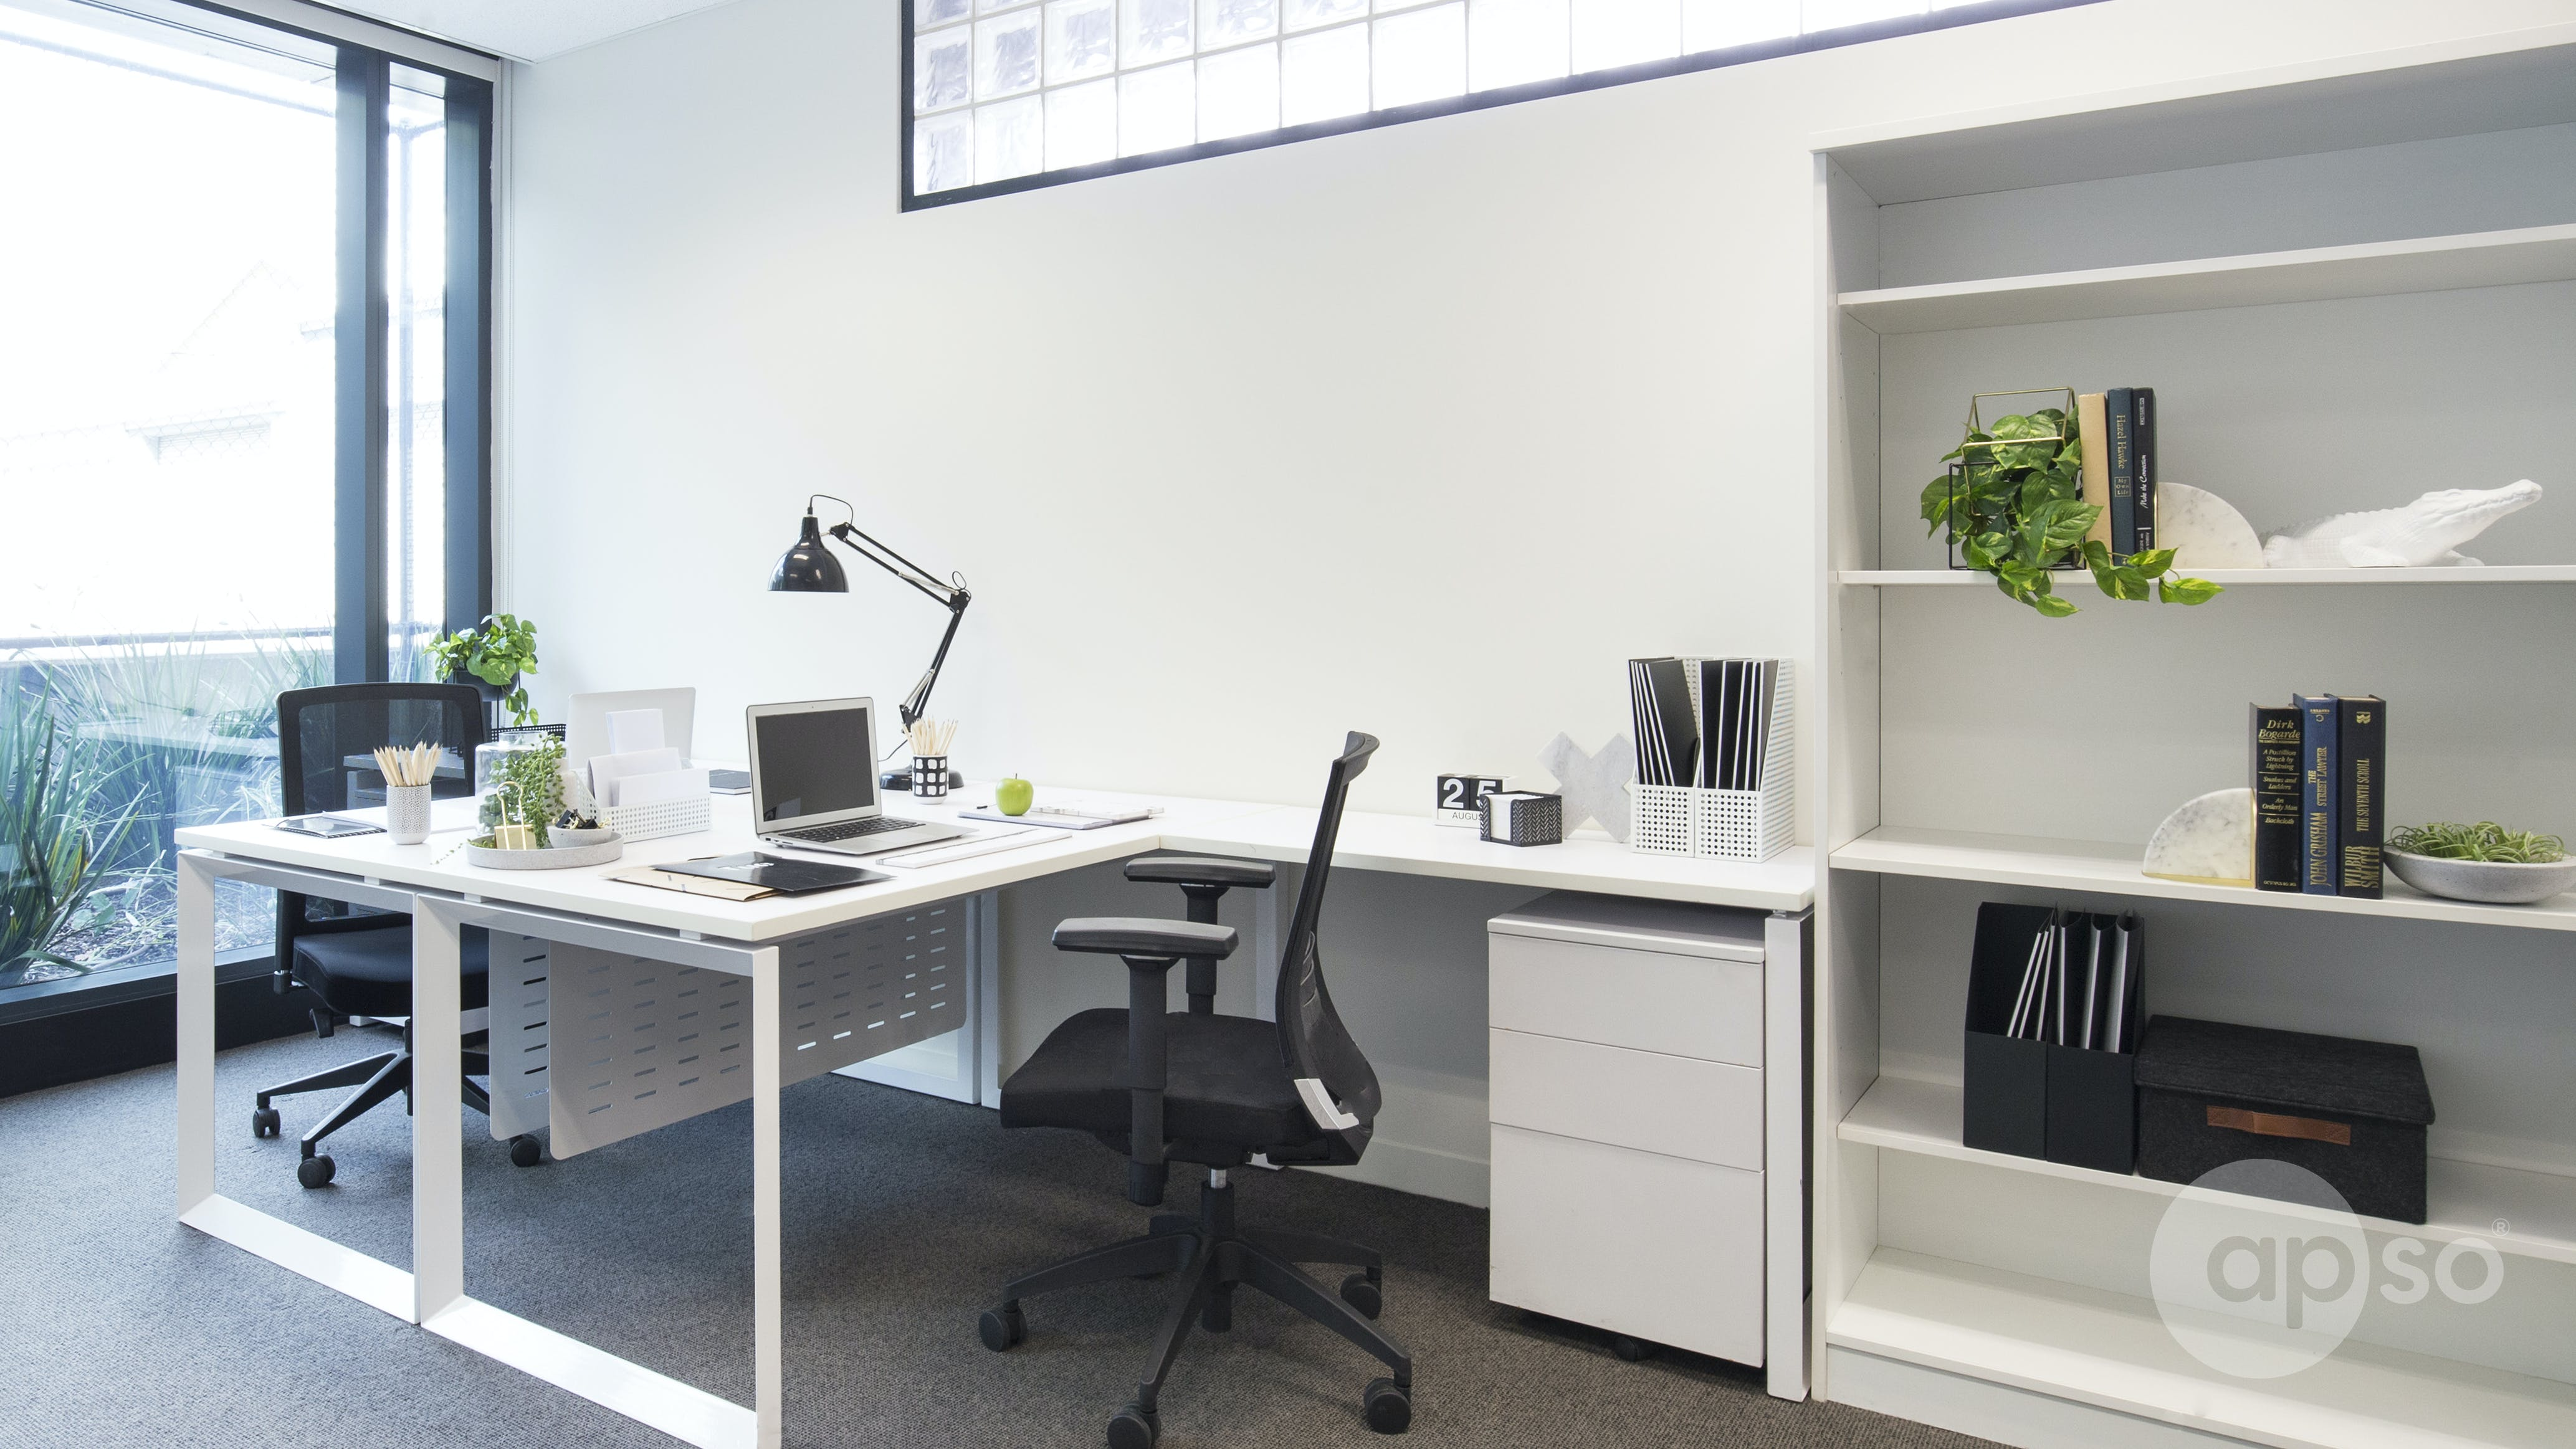 Suite G10abcd, private office at Corporate One, image 1